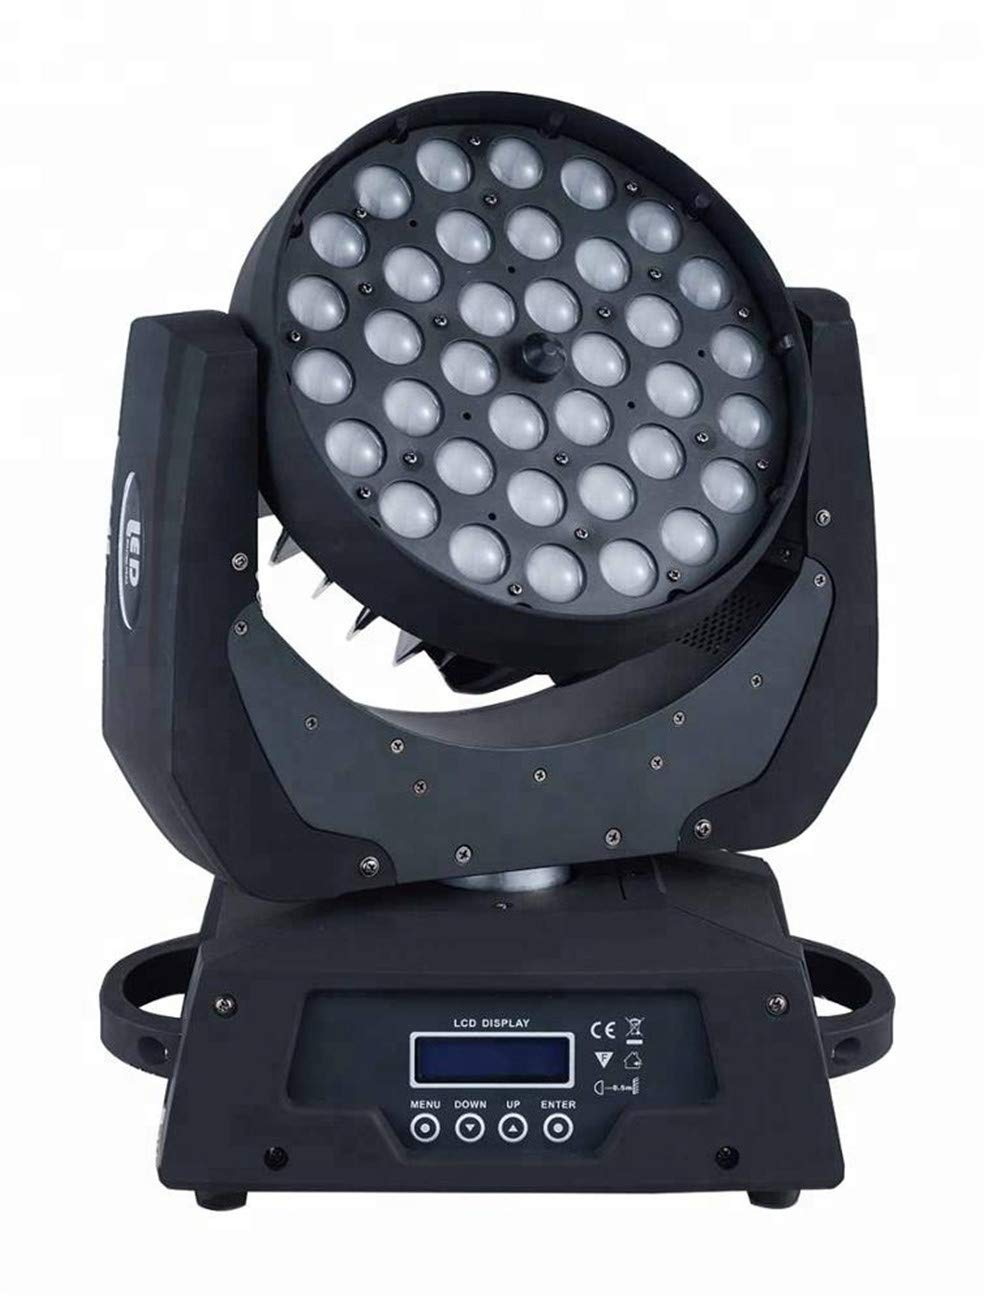 YICIX LED Stage Light/Spot Light DMX 512 / Master-Slave/Sound-Activated 10W for Party/Stage/Wedding Professional